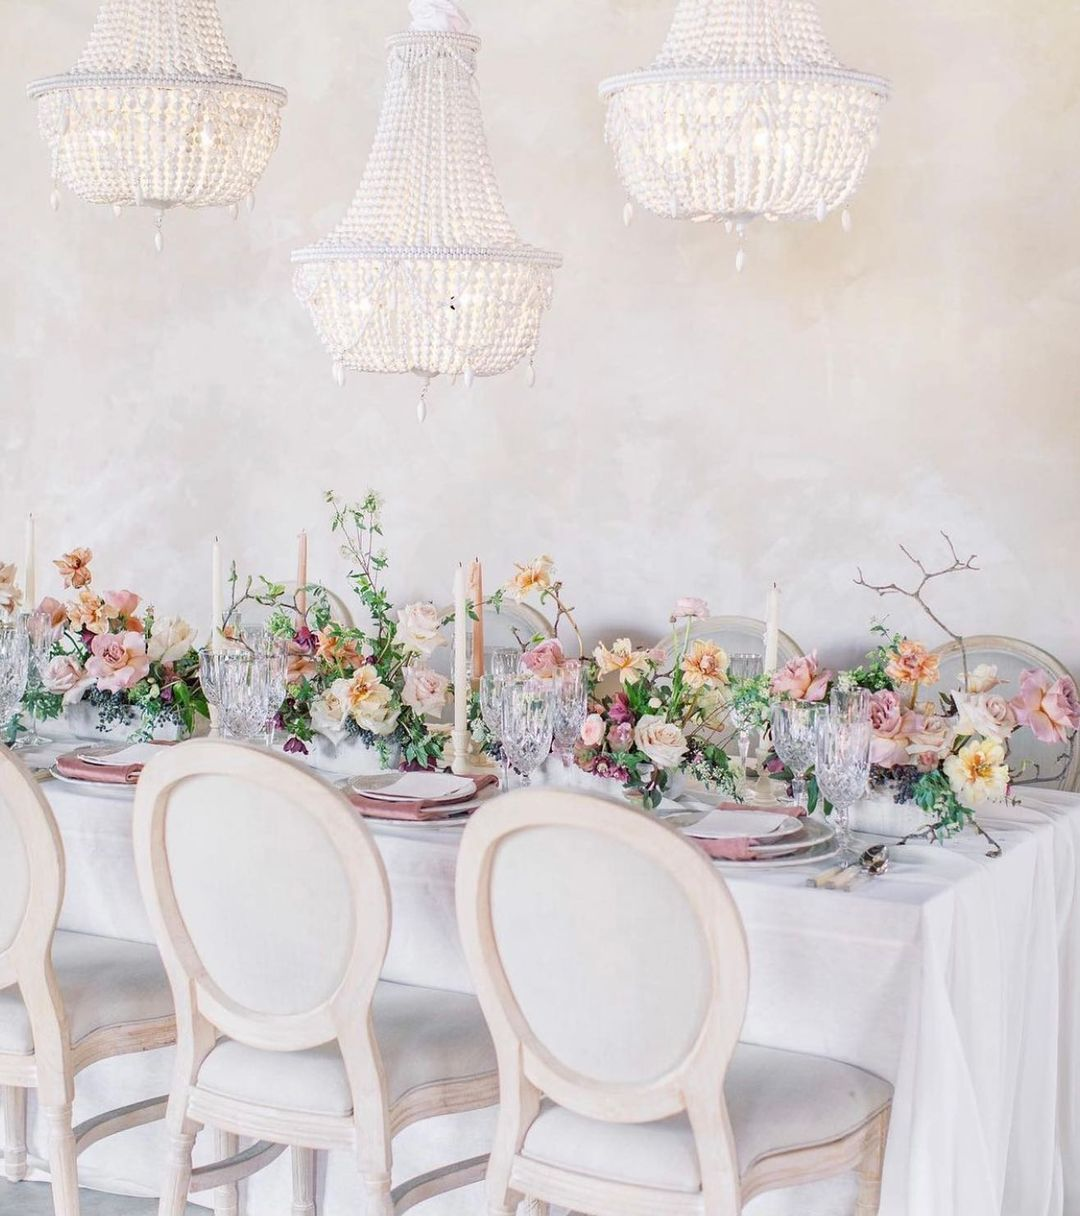 Chandeliers And Whimsical Decor